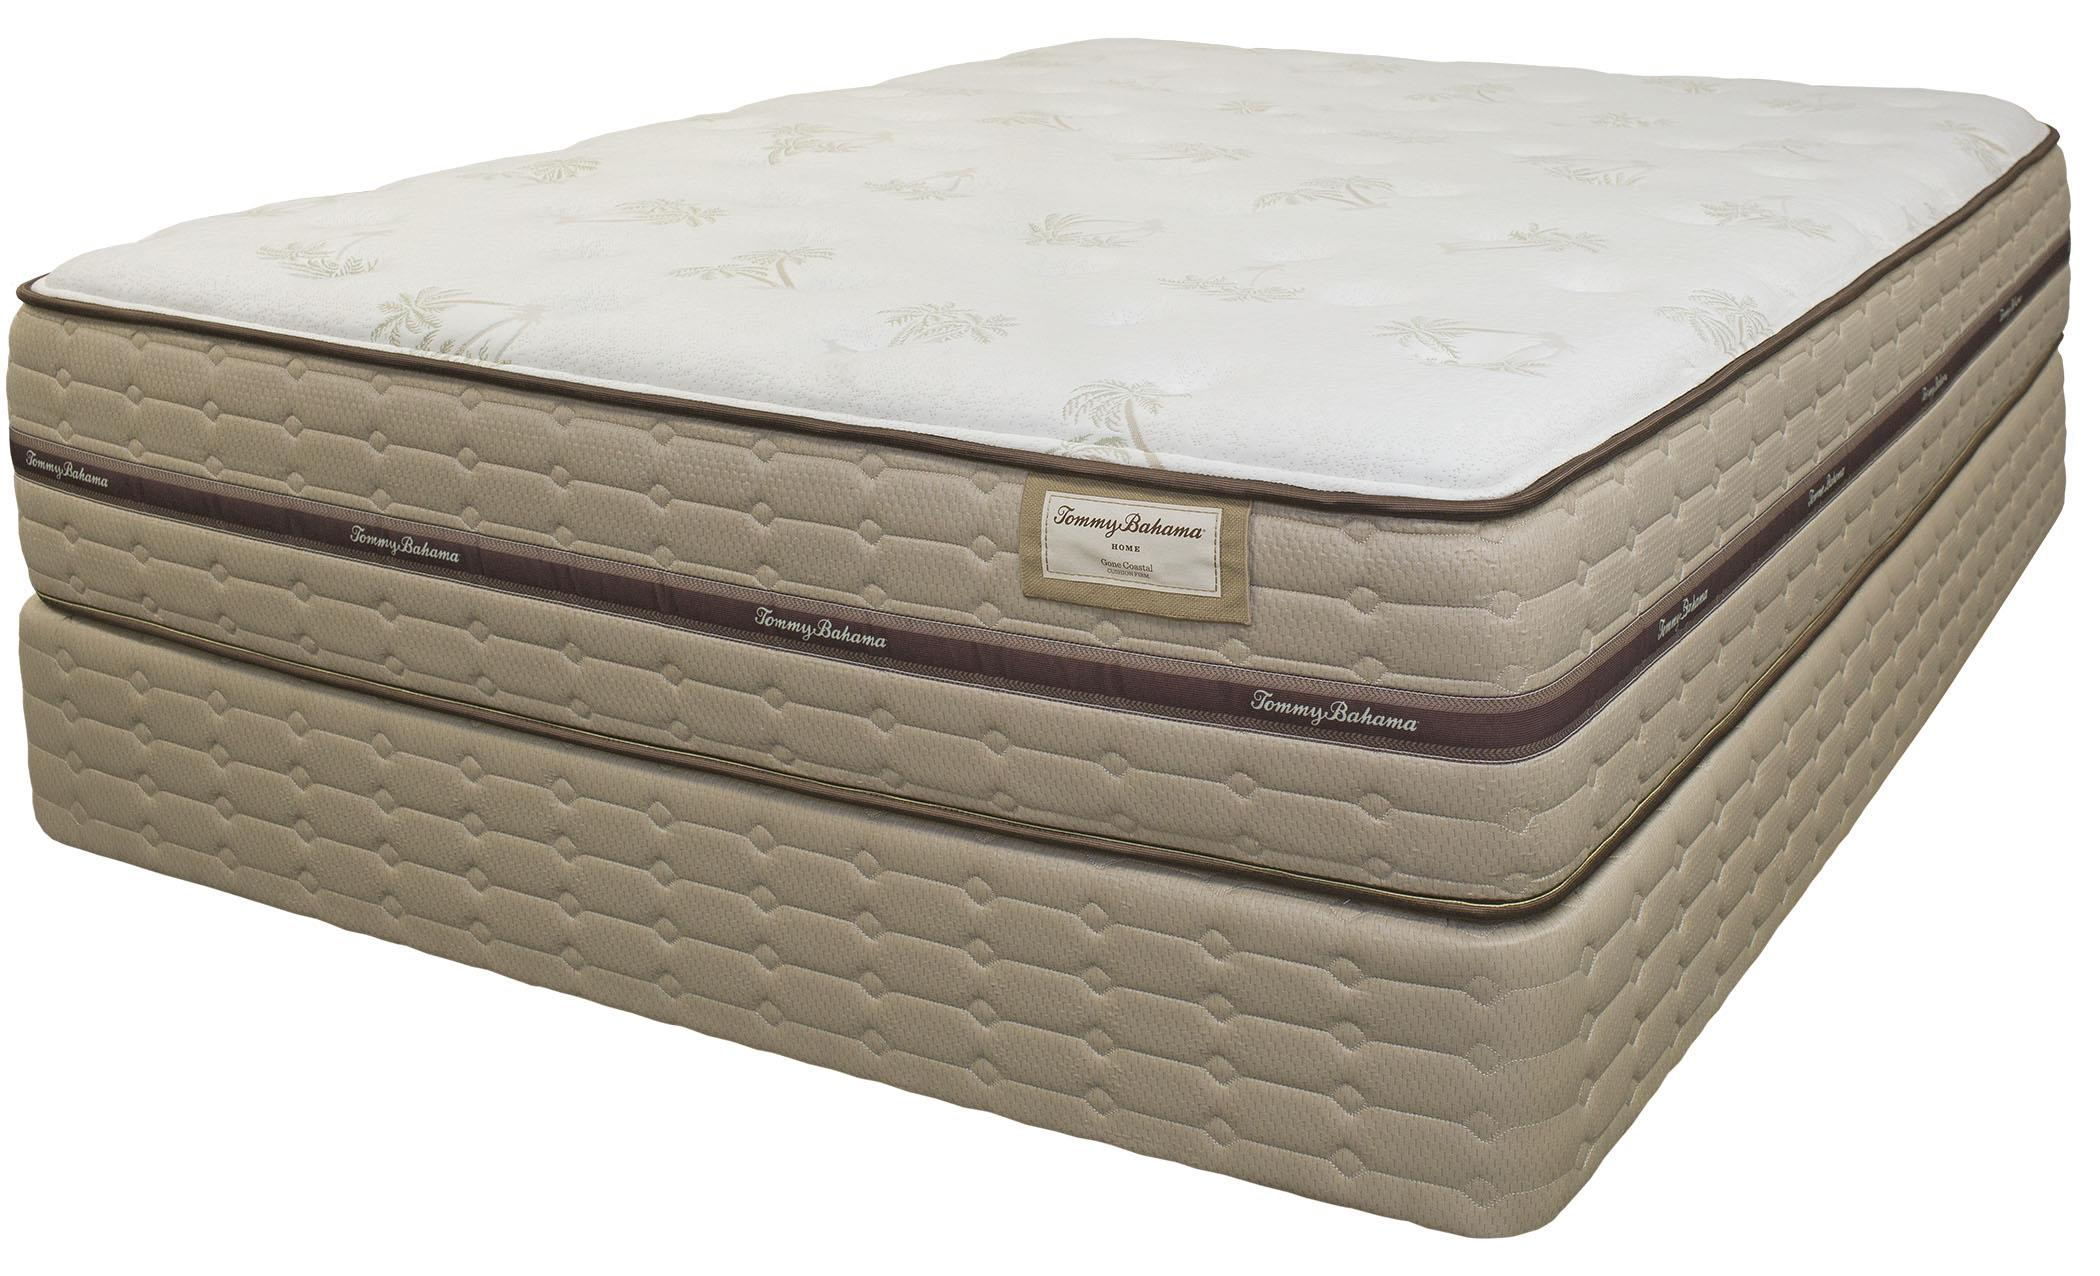 Tommy Bahama Mattress Tommy Bahama Mattress King Gone Coastal Plush Mattress - Item Number: 6020-K